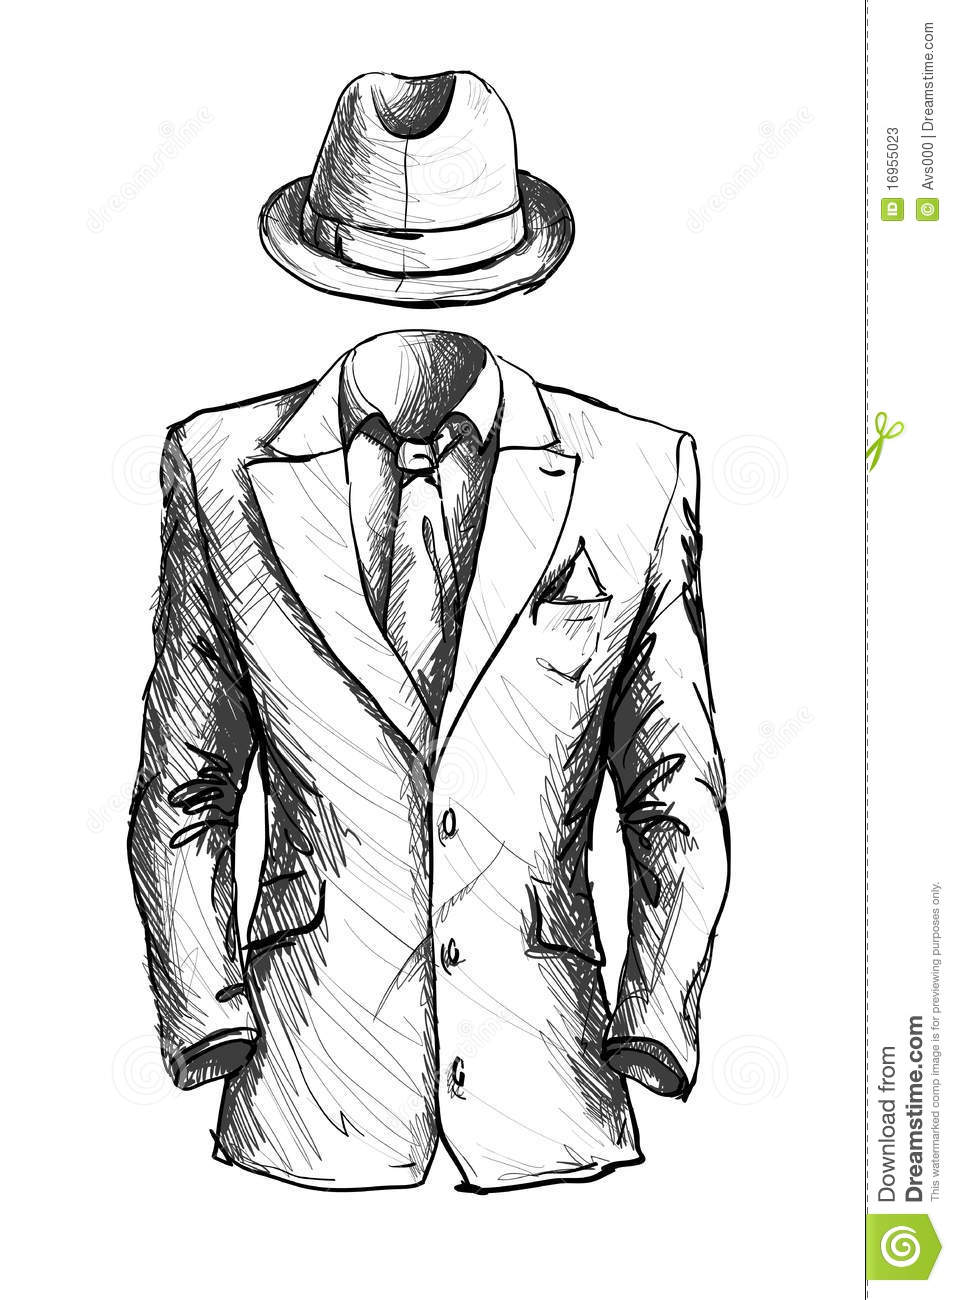 Suit stock vector. Illustration of concepts, business